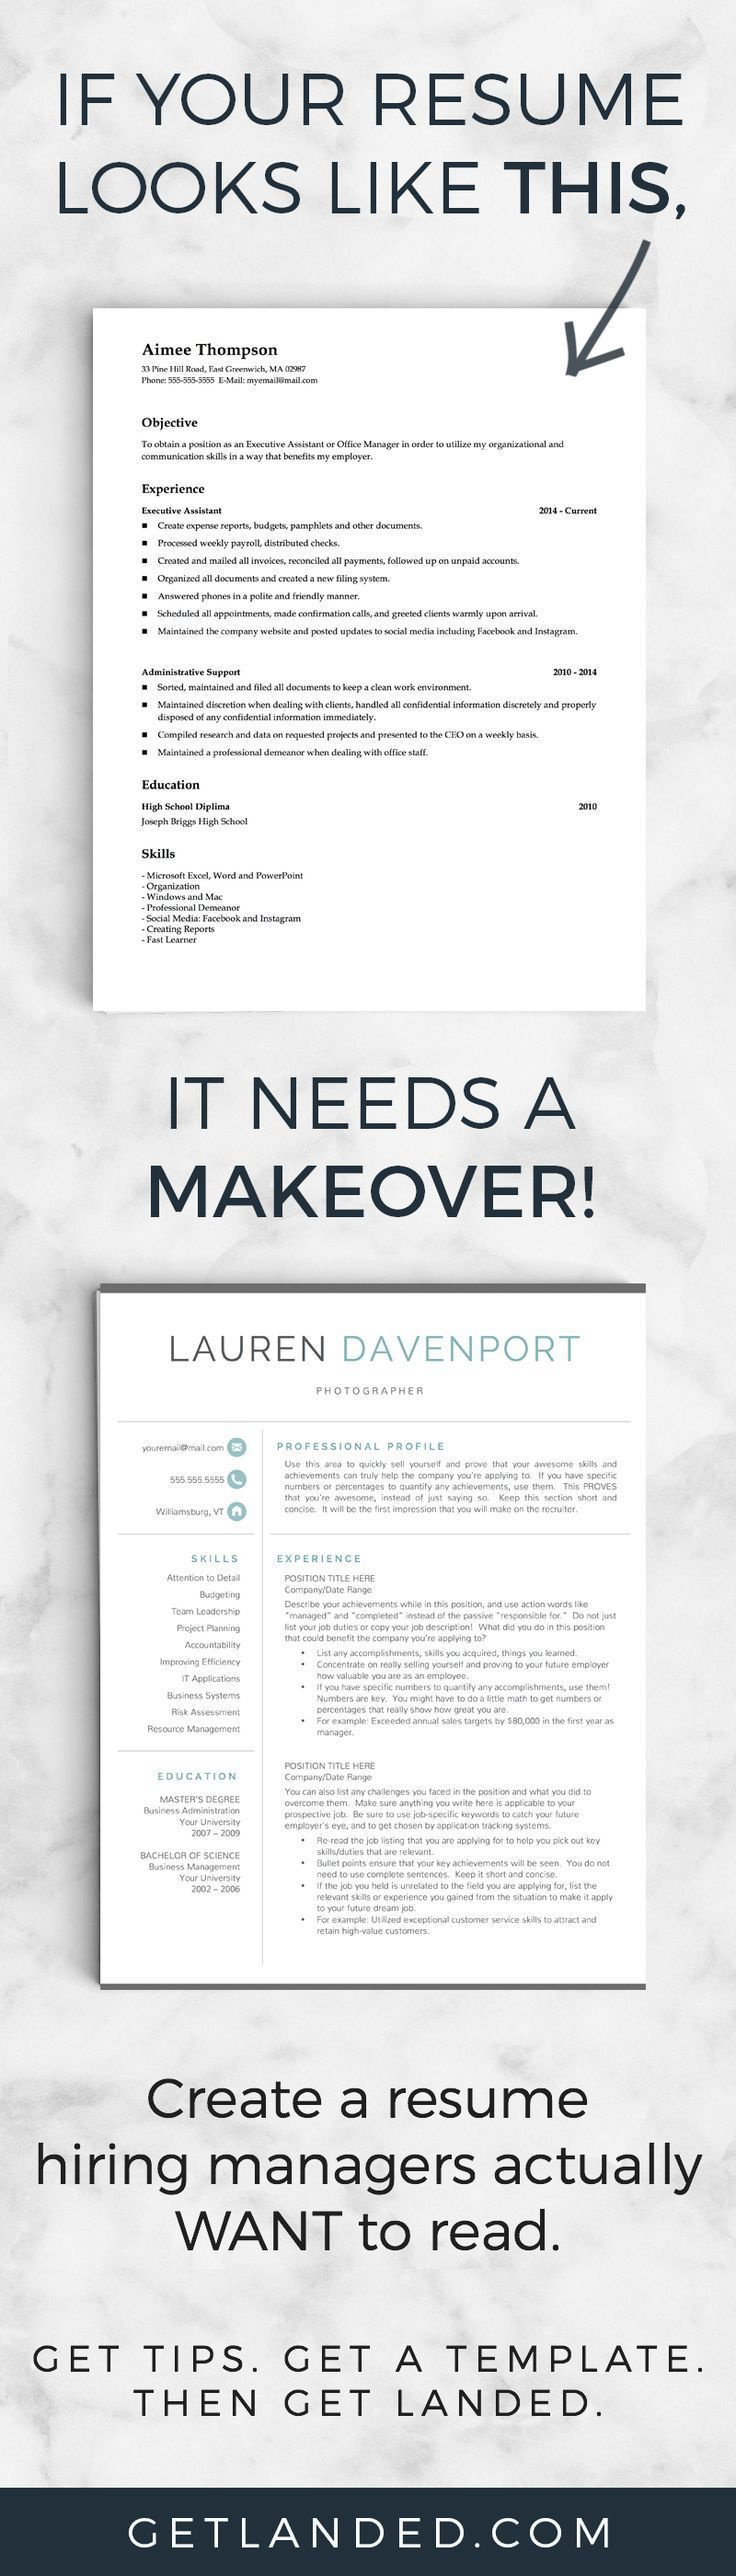 80 of candidates desperately need a resume makeover Get a resume makeover today with a resume